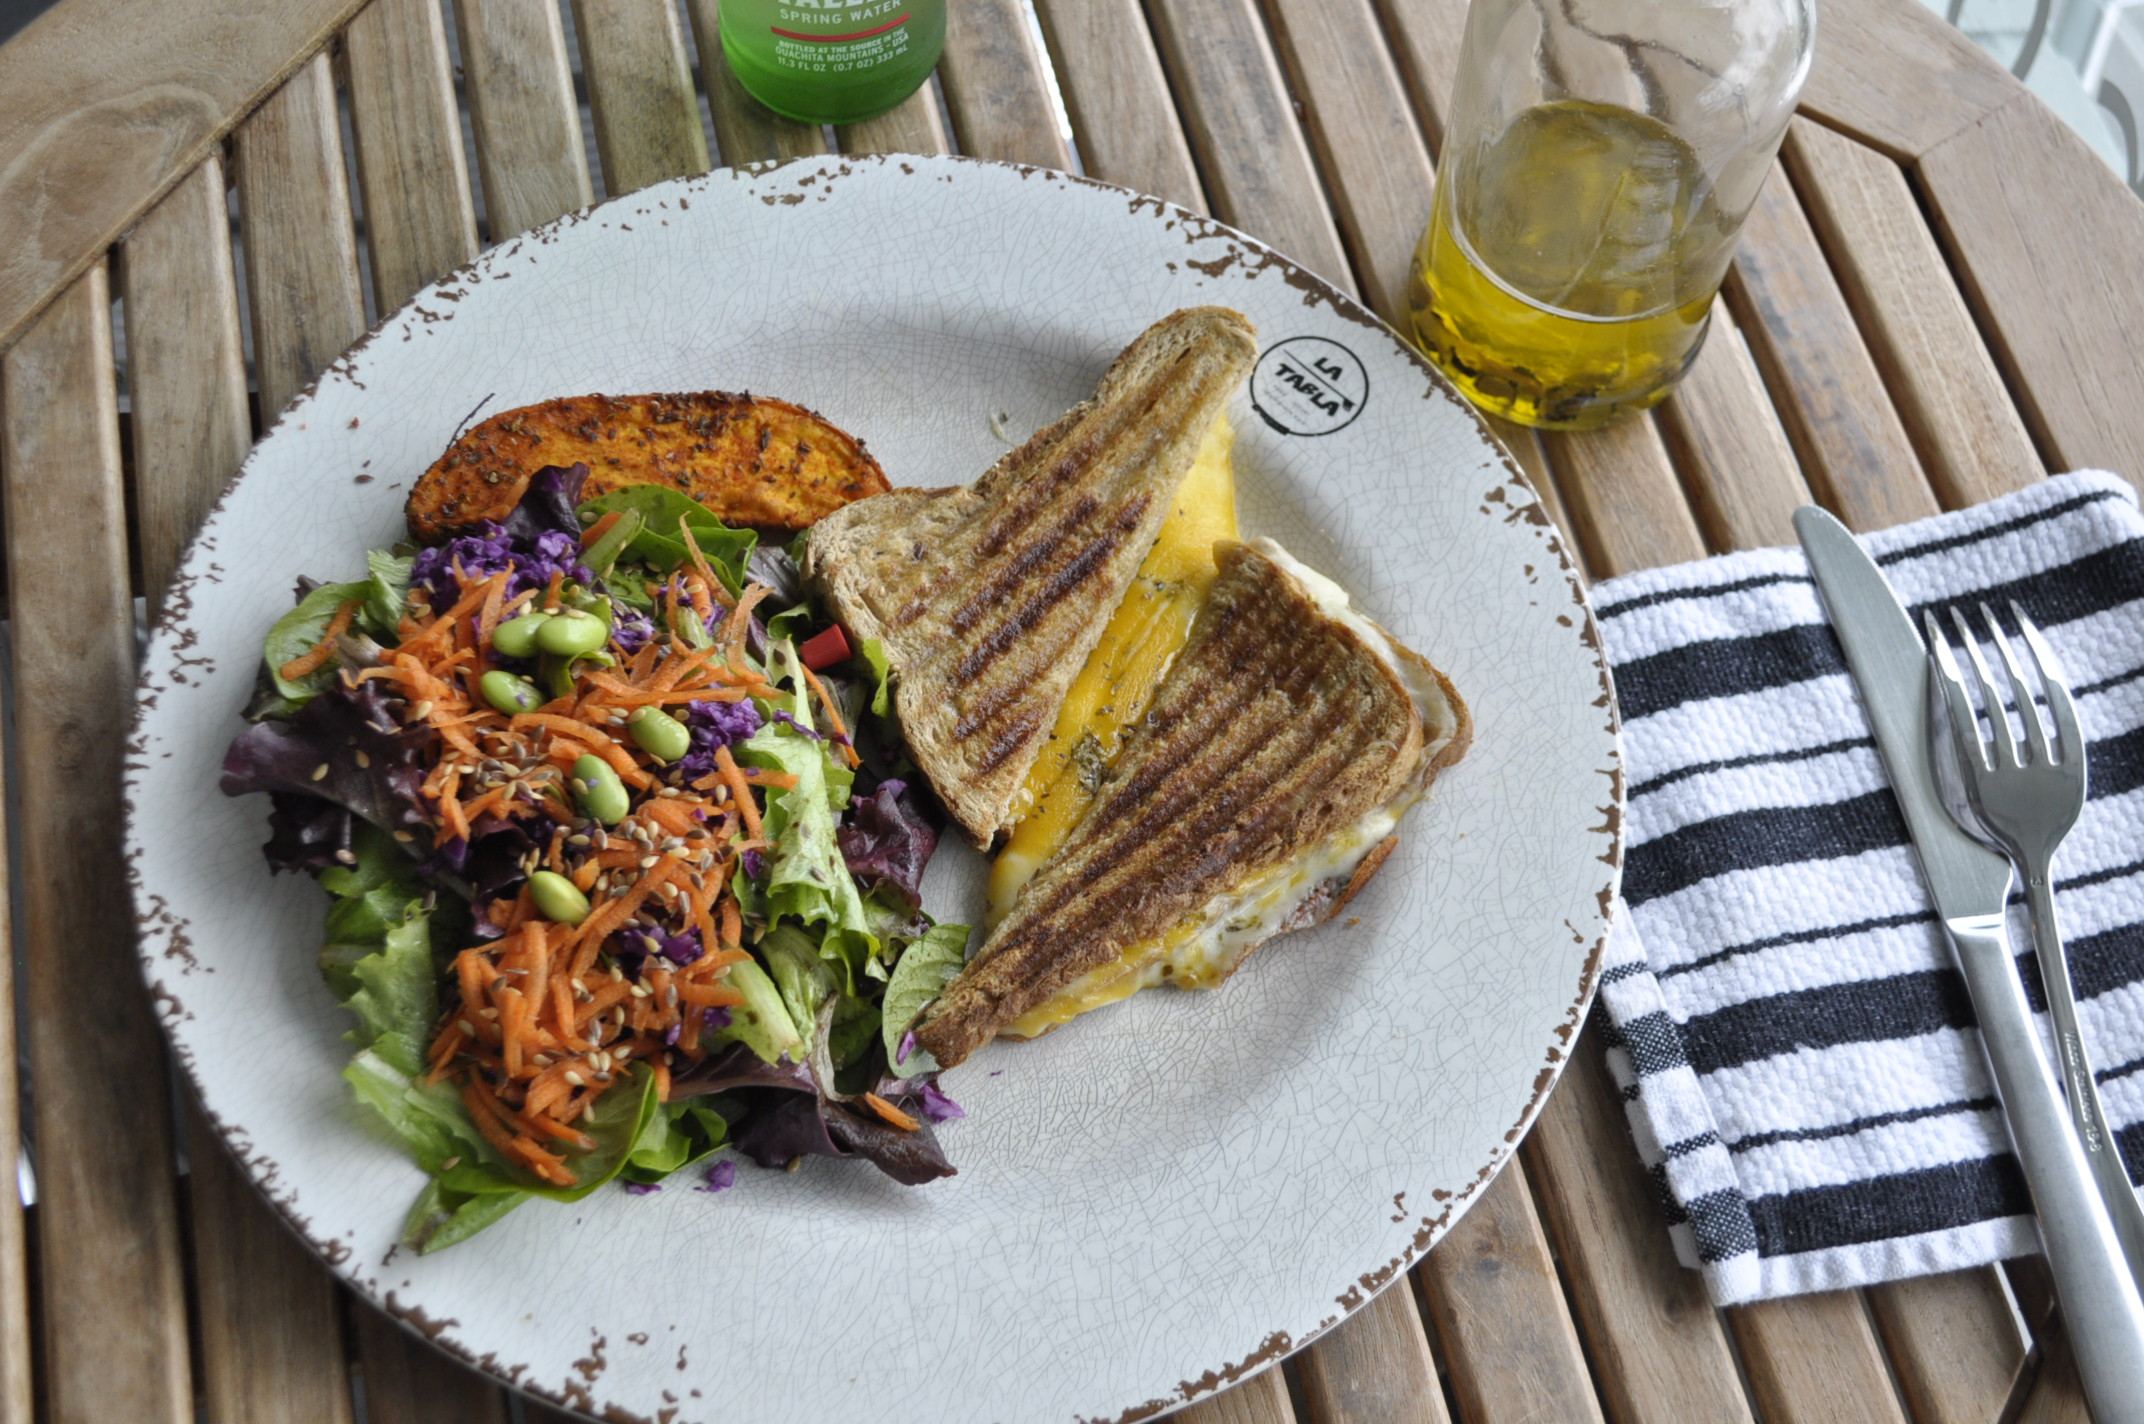 Four cheese Panini with organic black truffle olive oil